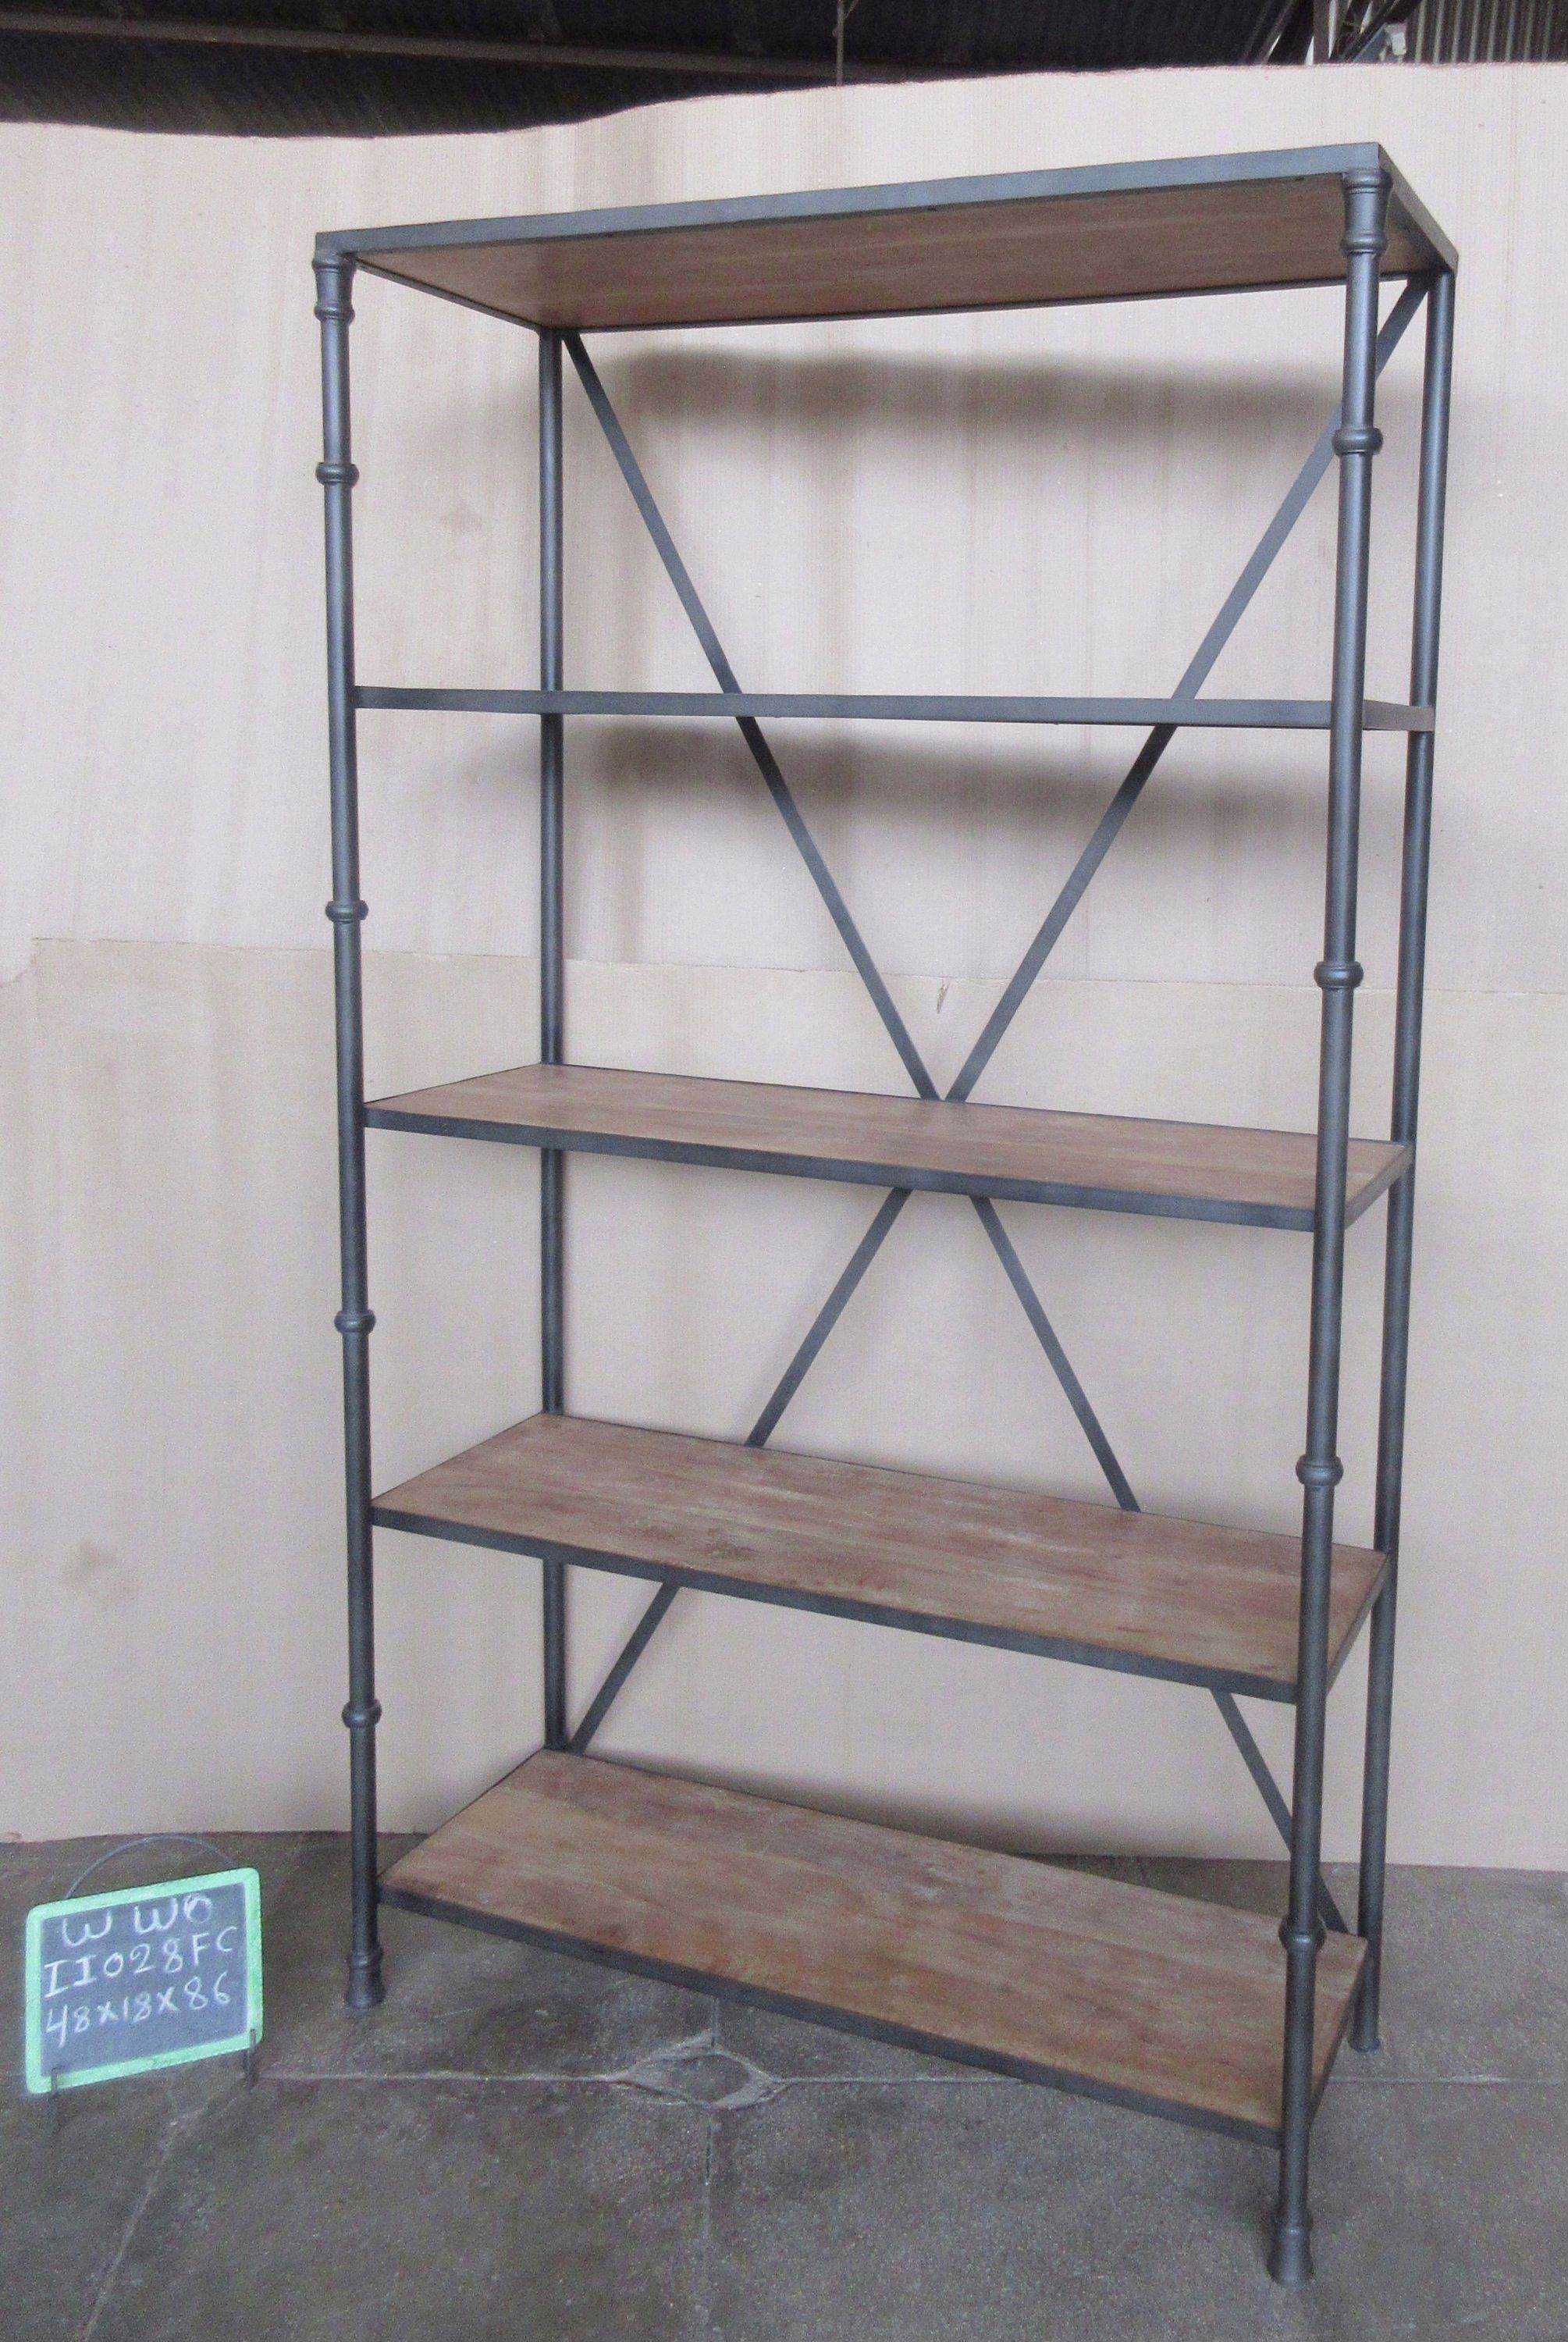 IRON + WOODEN SHELF